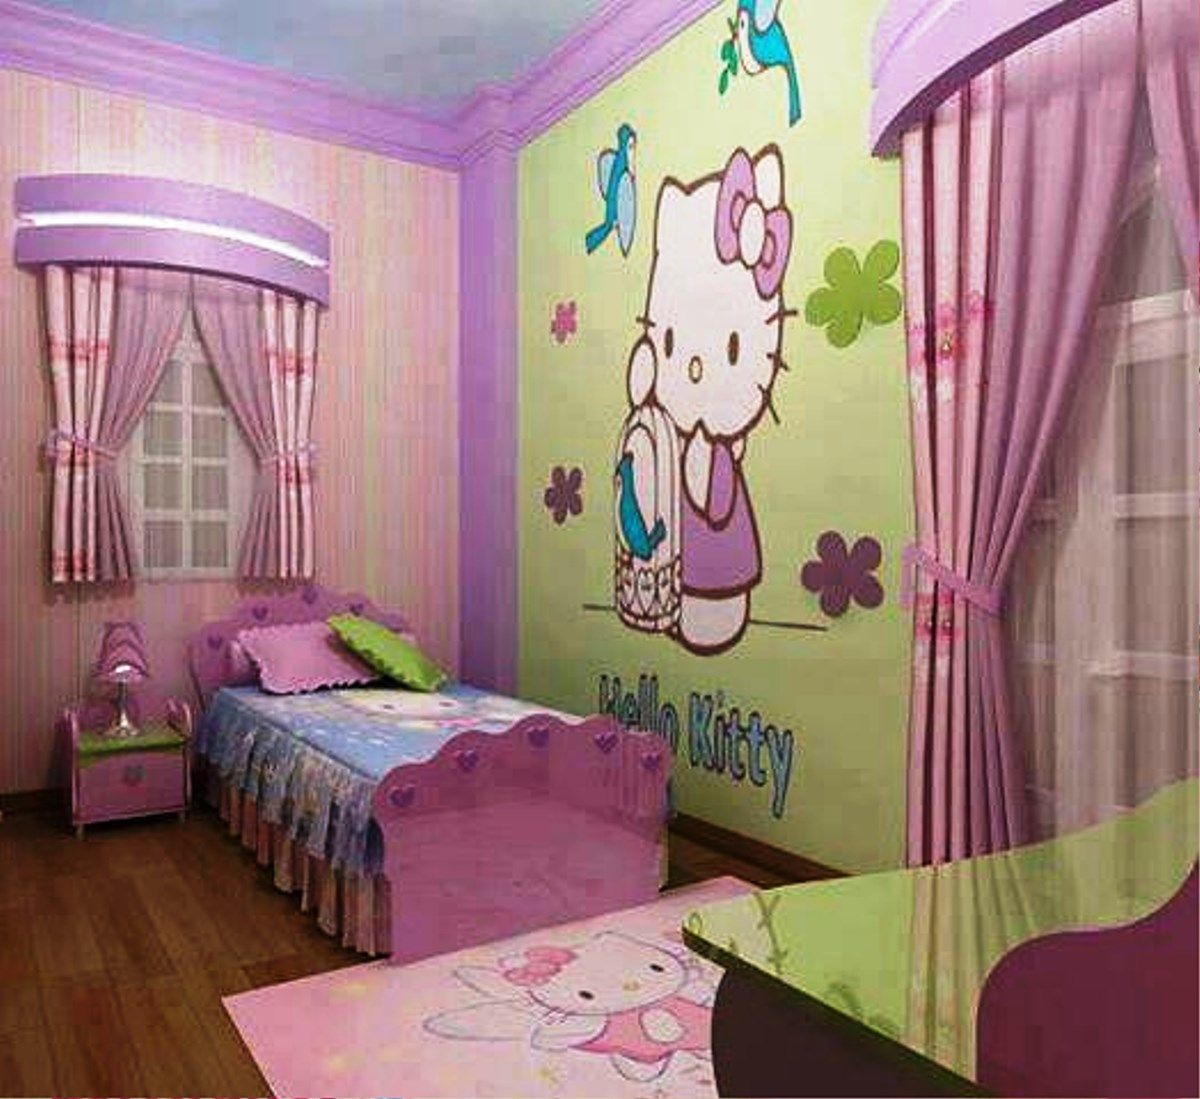 Bedroom ideas for girls hello kitty - Hello Kitty Girl S Room